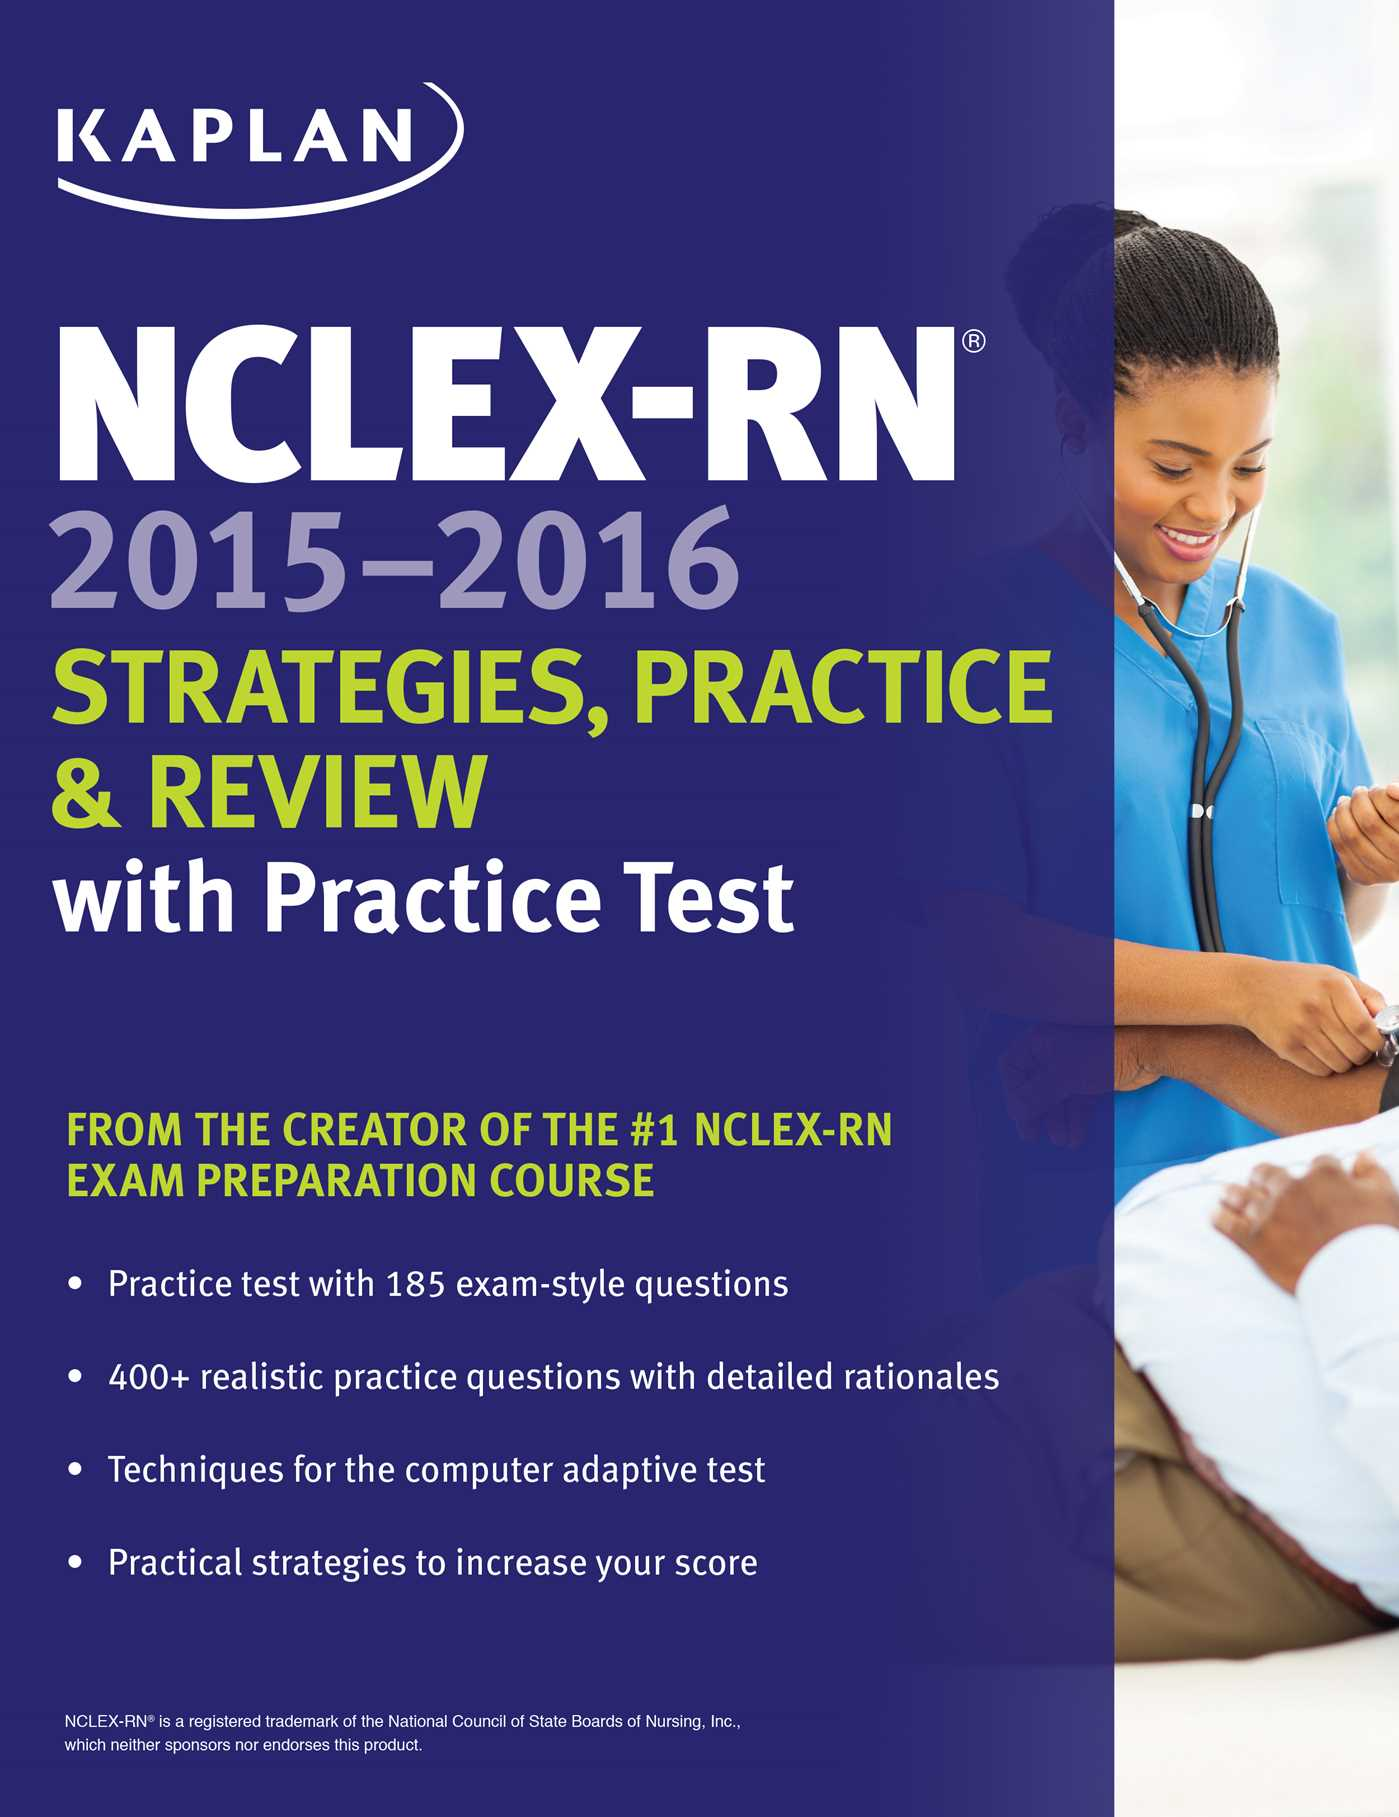 Nclex Rn Strategies Practice And Review With Practice Test Ebook By Kaplan